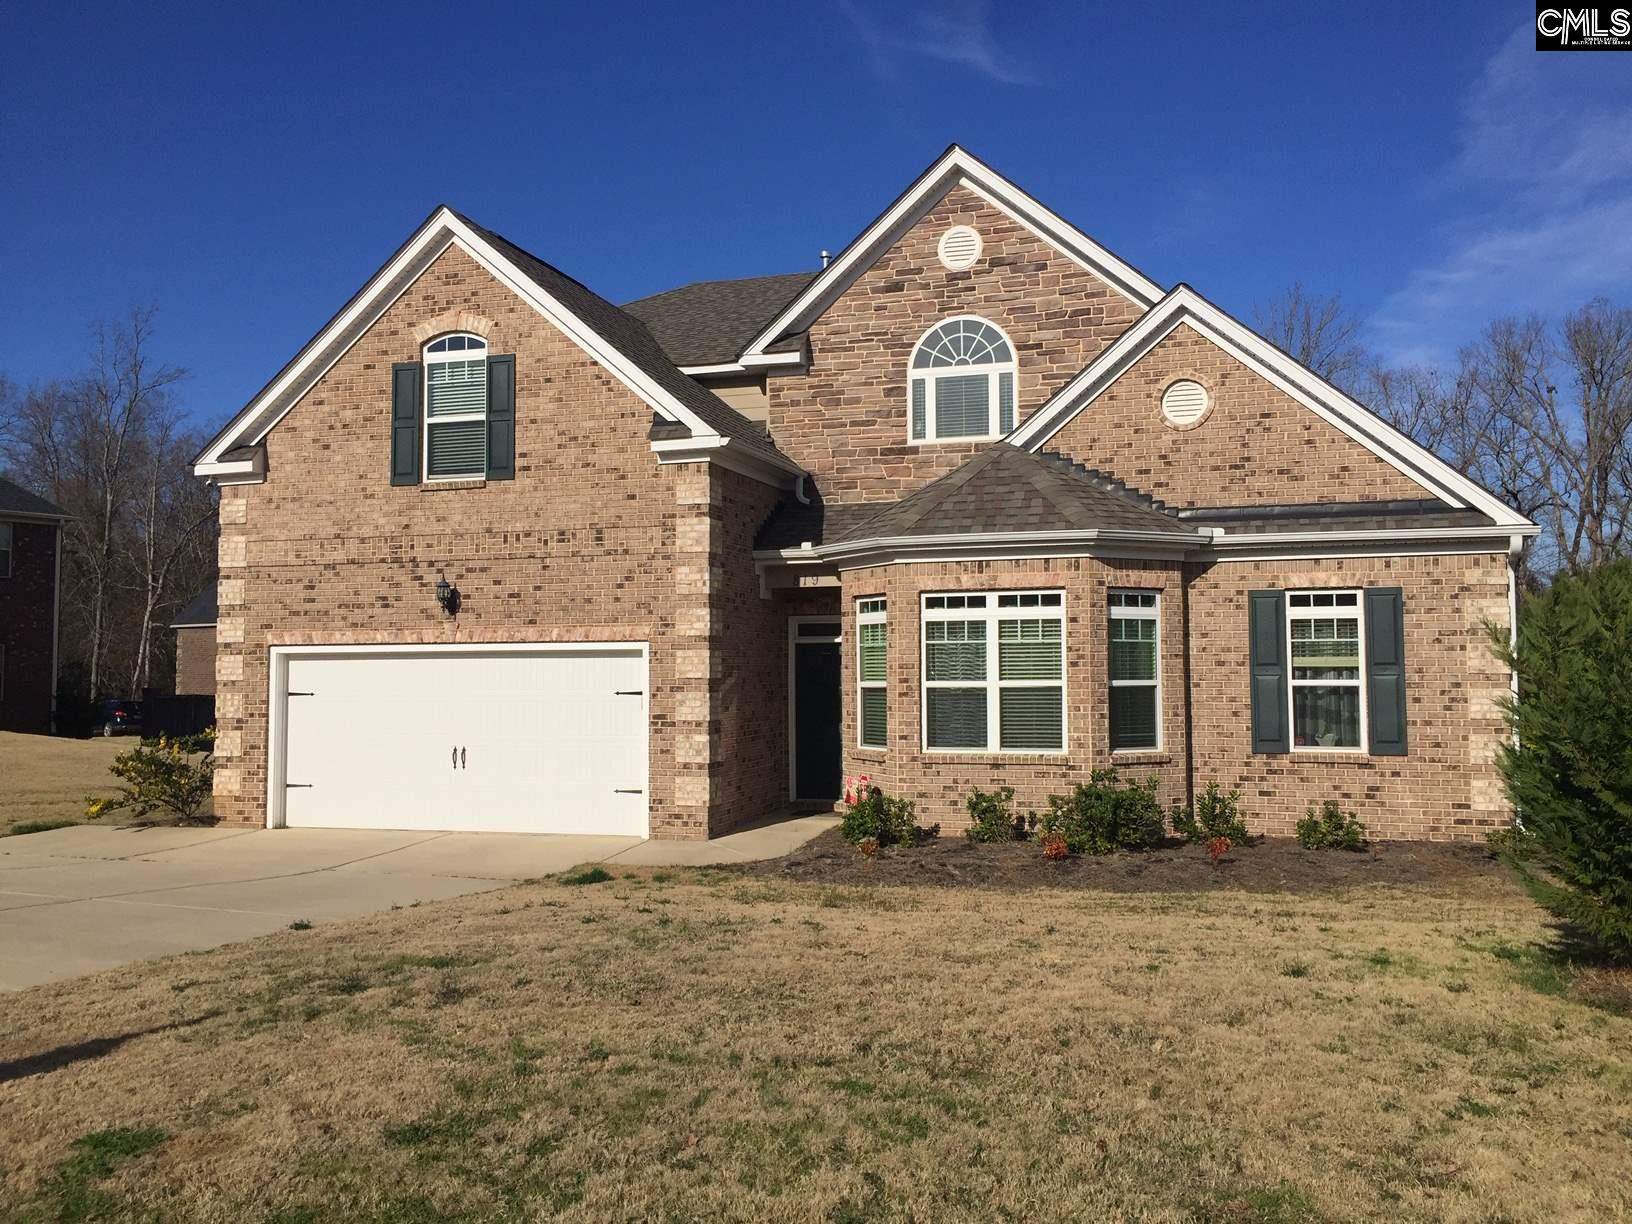 819 Village Well Chapin, SC 29036-7584